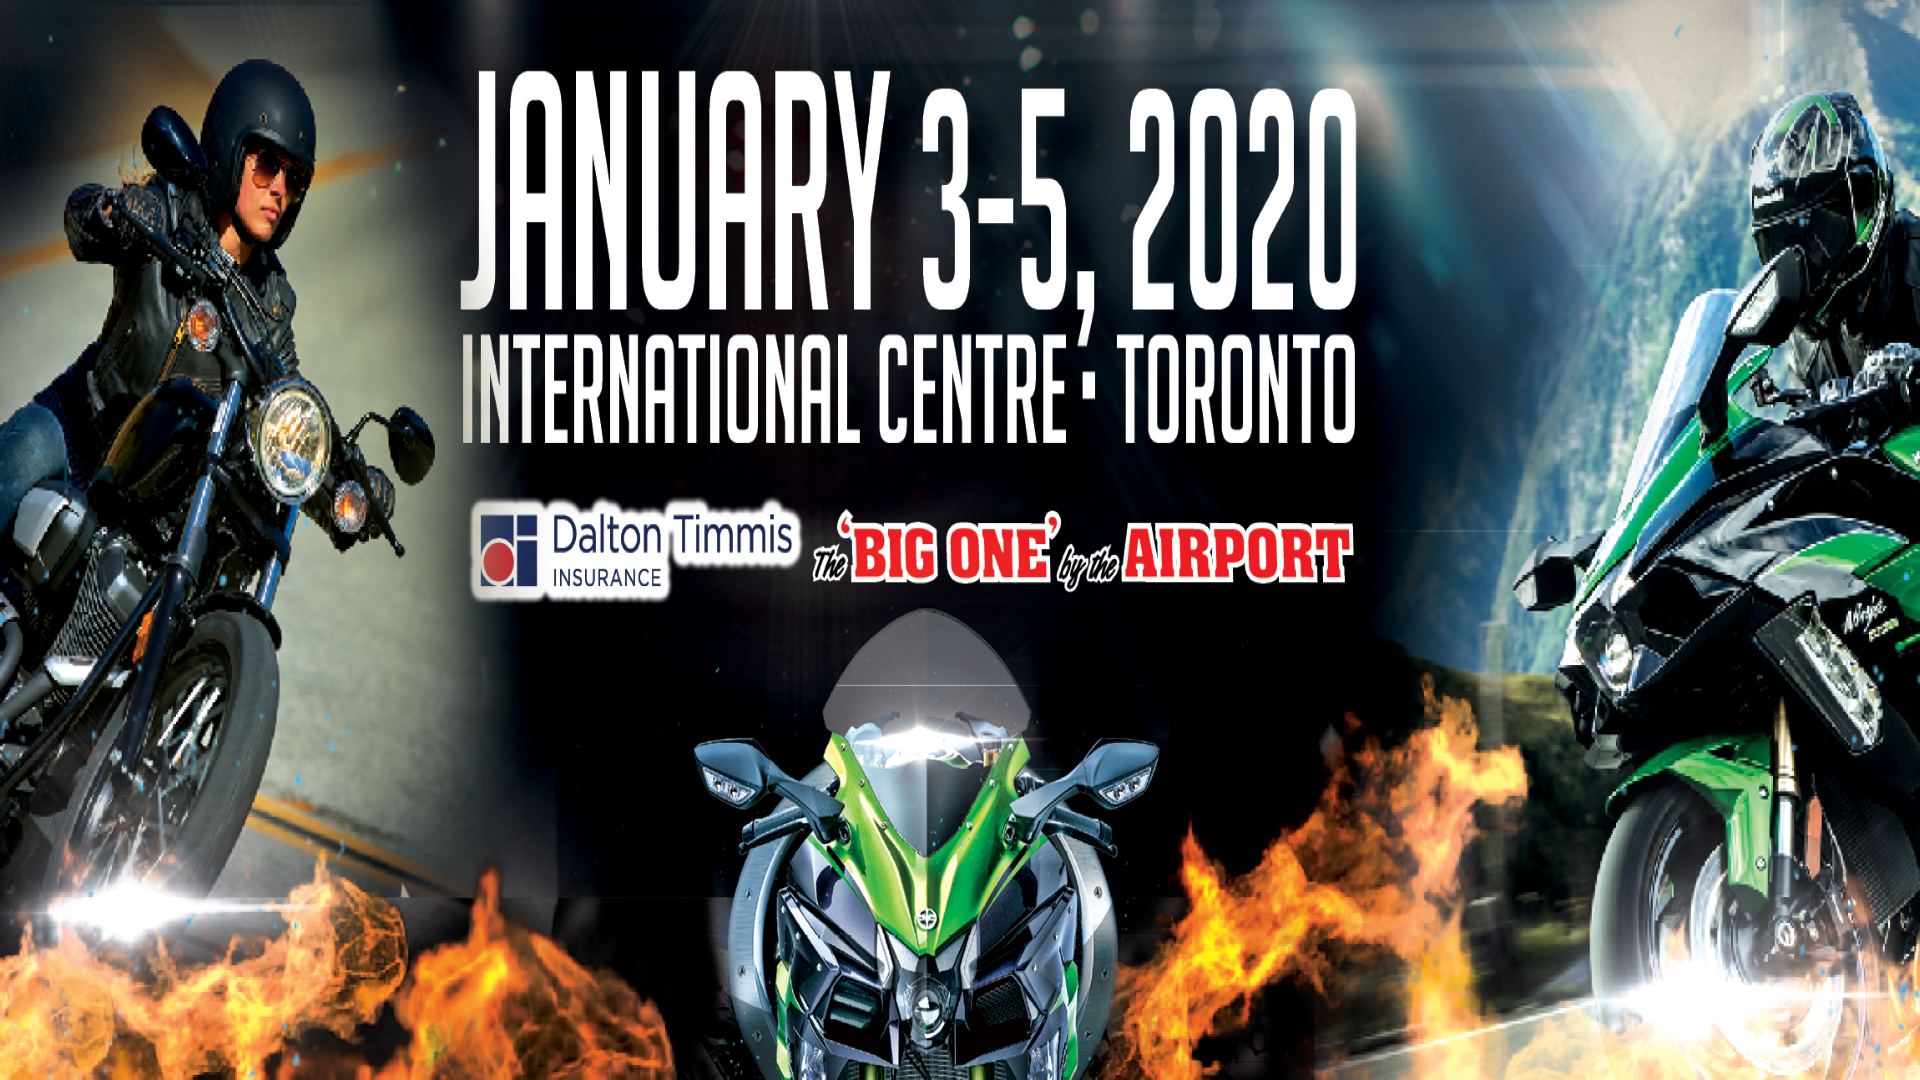 44th Annual North American International Motorcycle Supershow